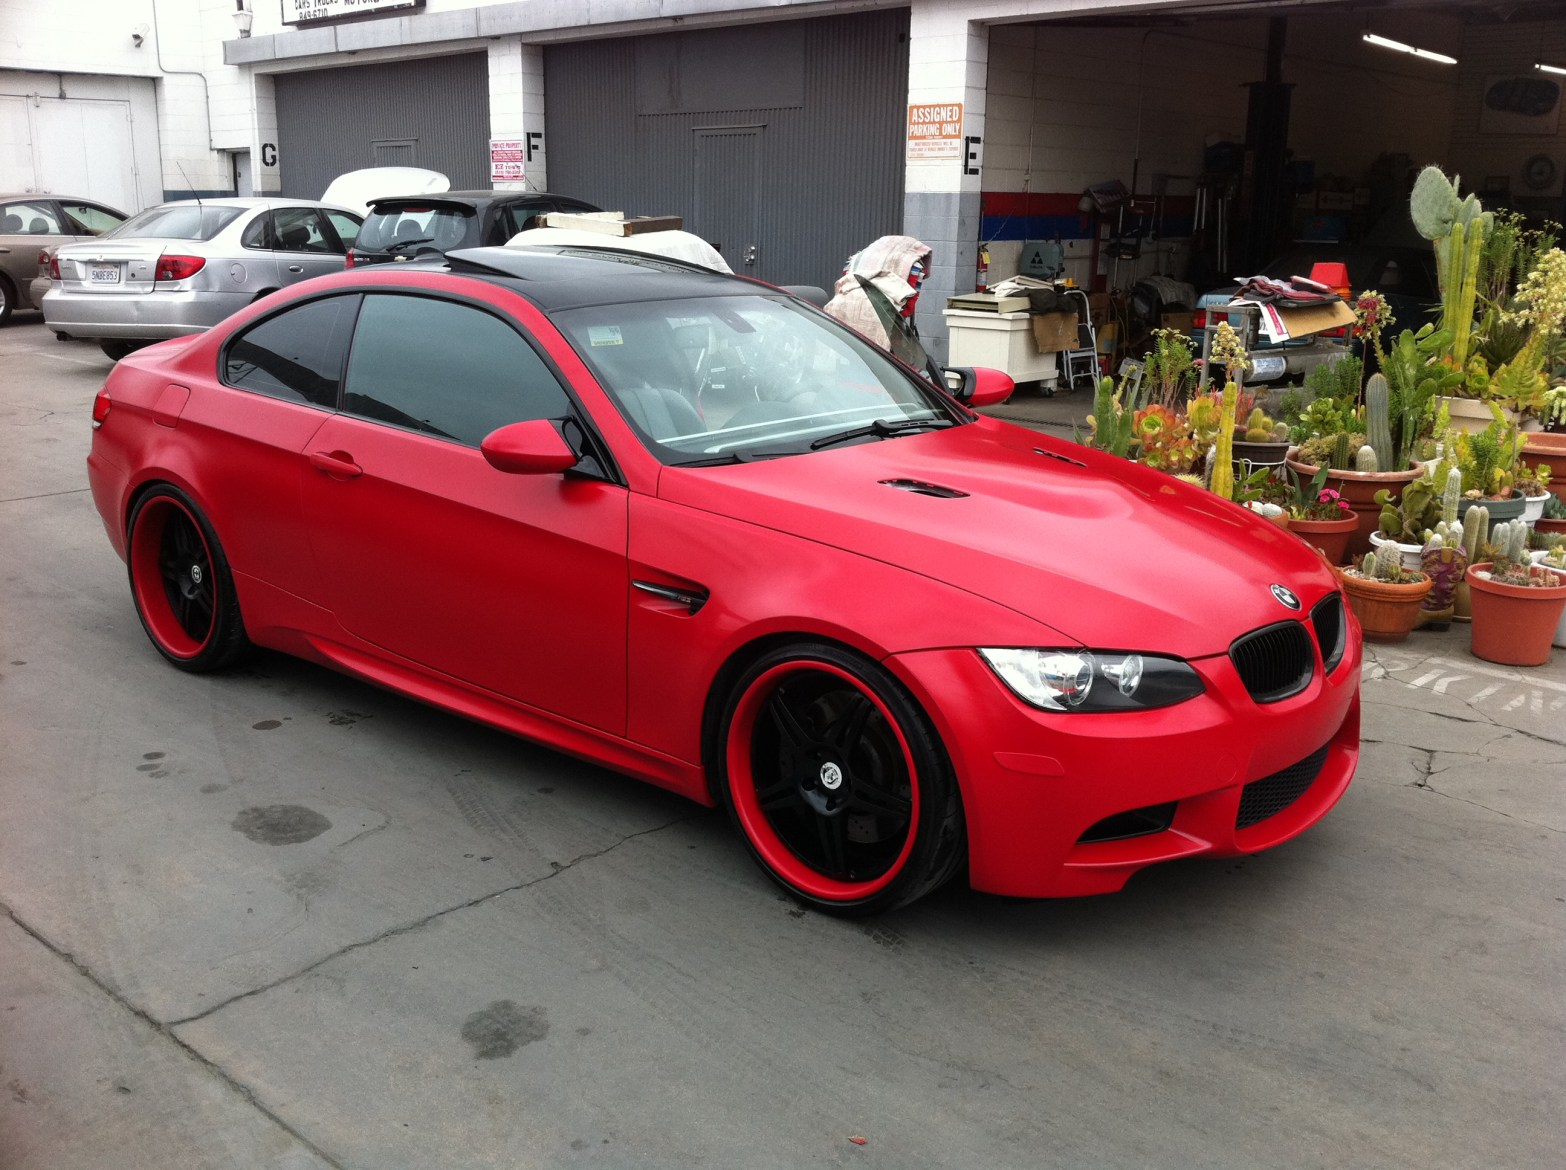 west-coast-body-and-paint-red-2008-bmw-m3-matte-25